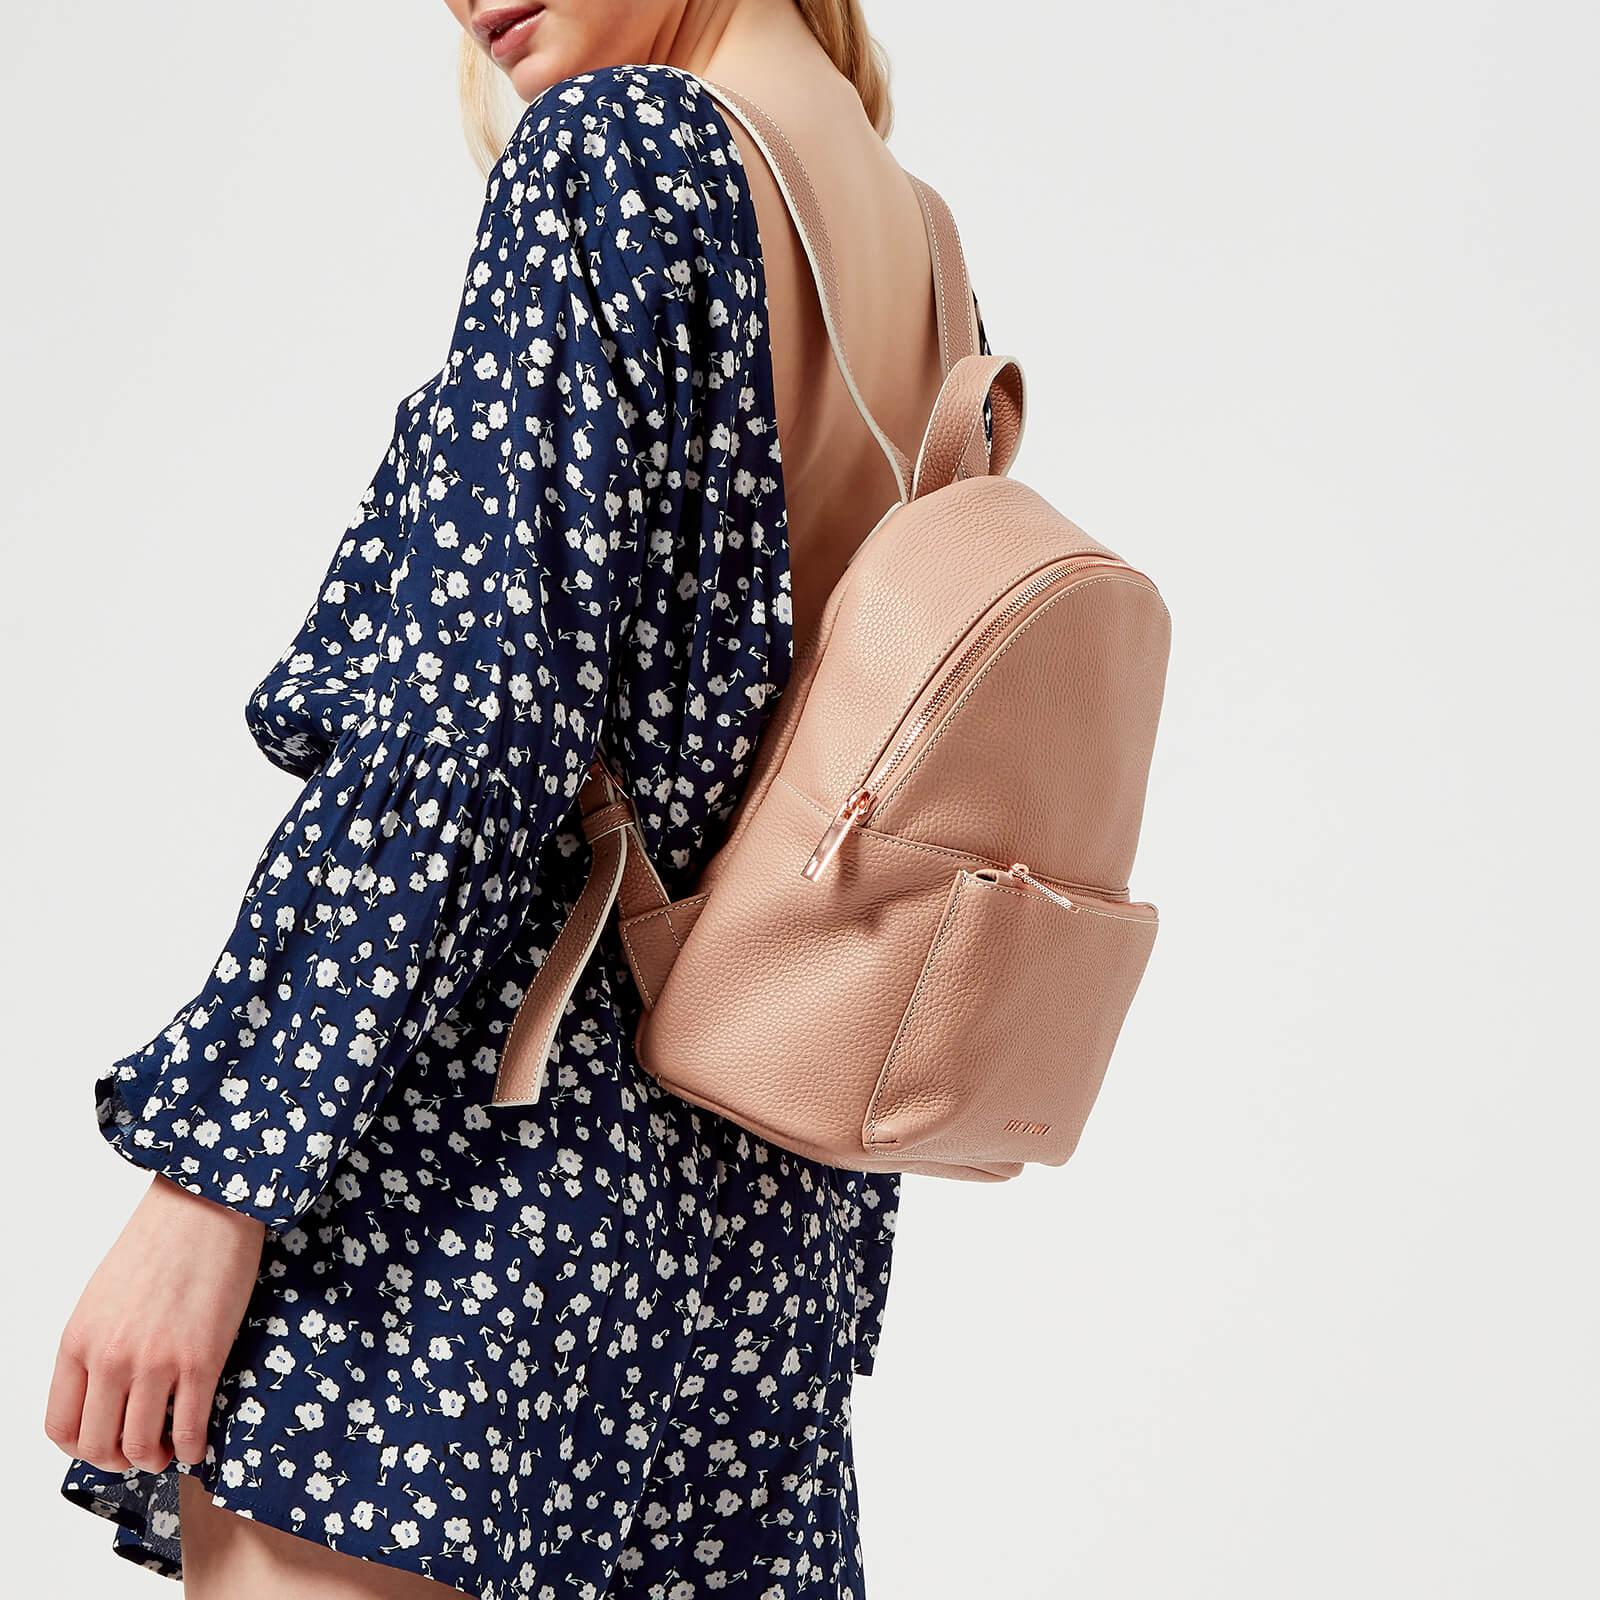 a055baac2 Lyst - Ted Baker Pearen Soft Grain Backpack